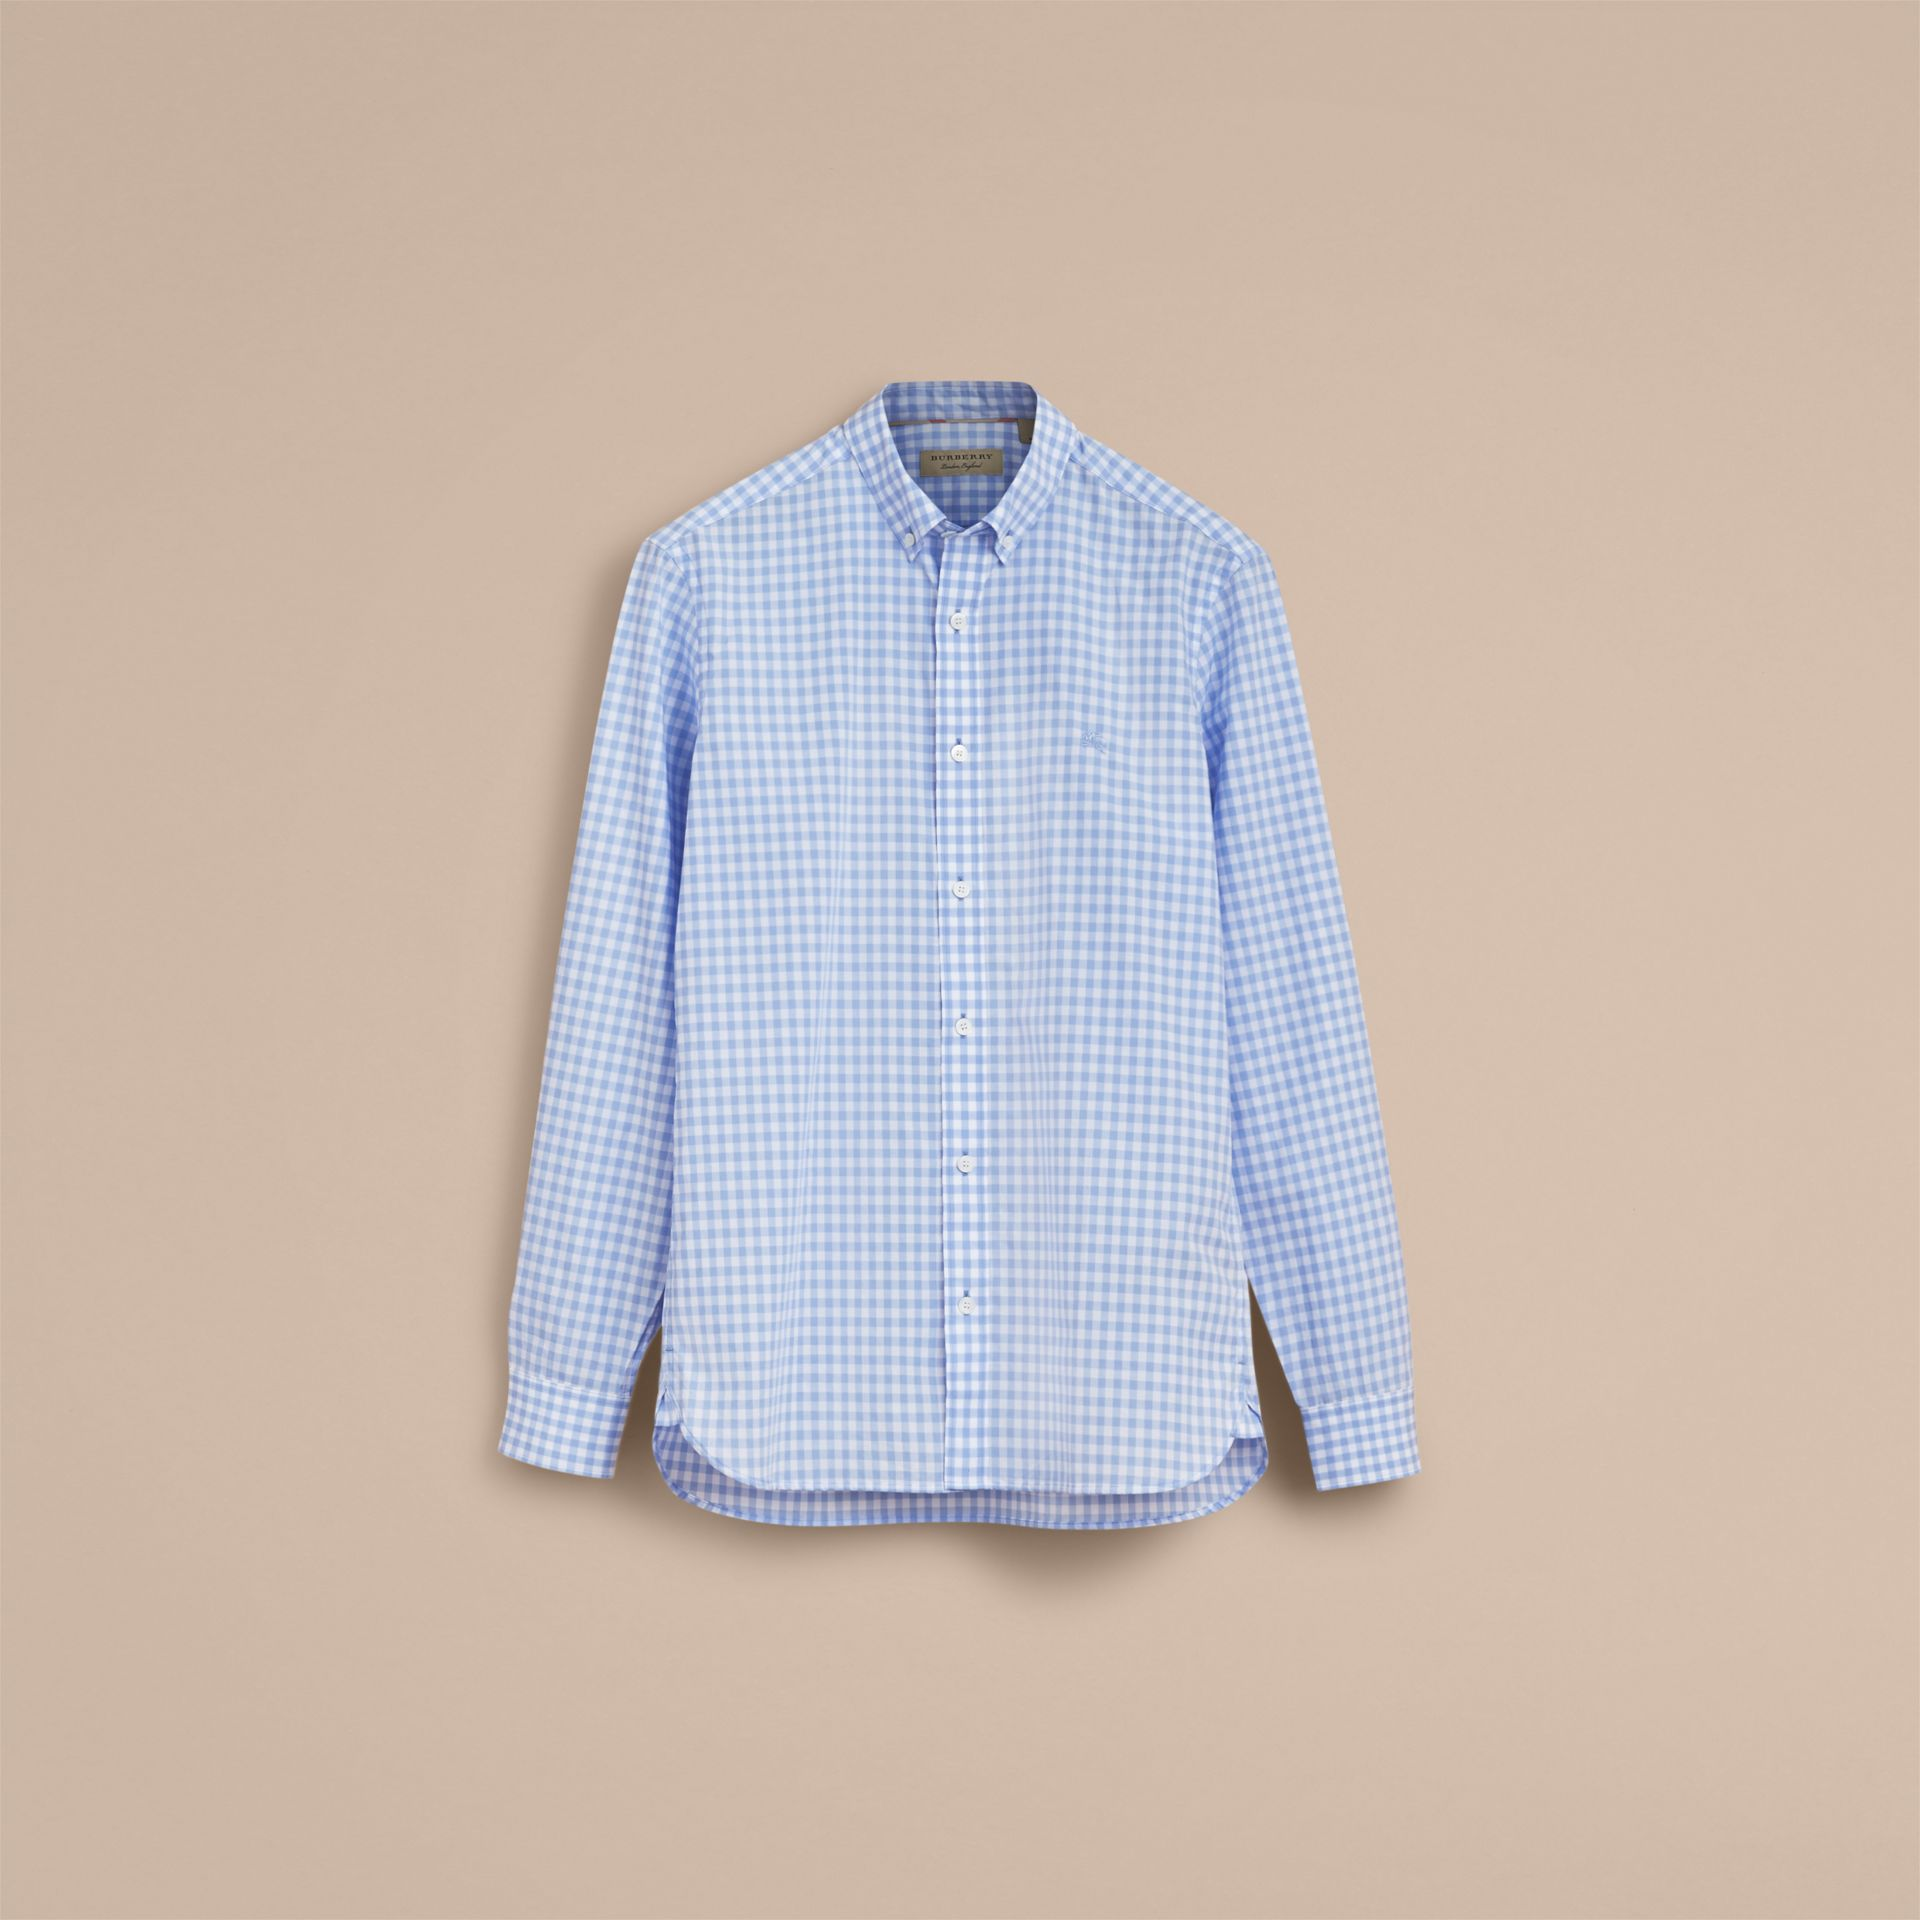 Button-down Collar Gingham Cotton Shirt in Pale Blue - Men | Burberry - gallery image 4